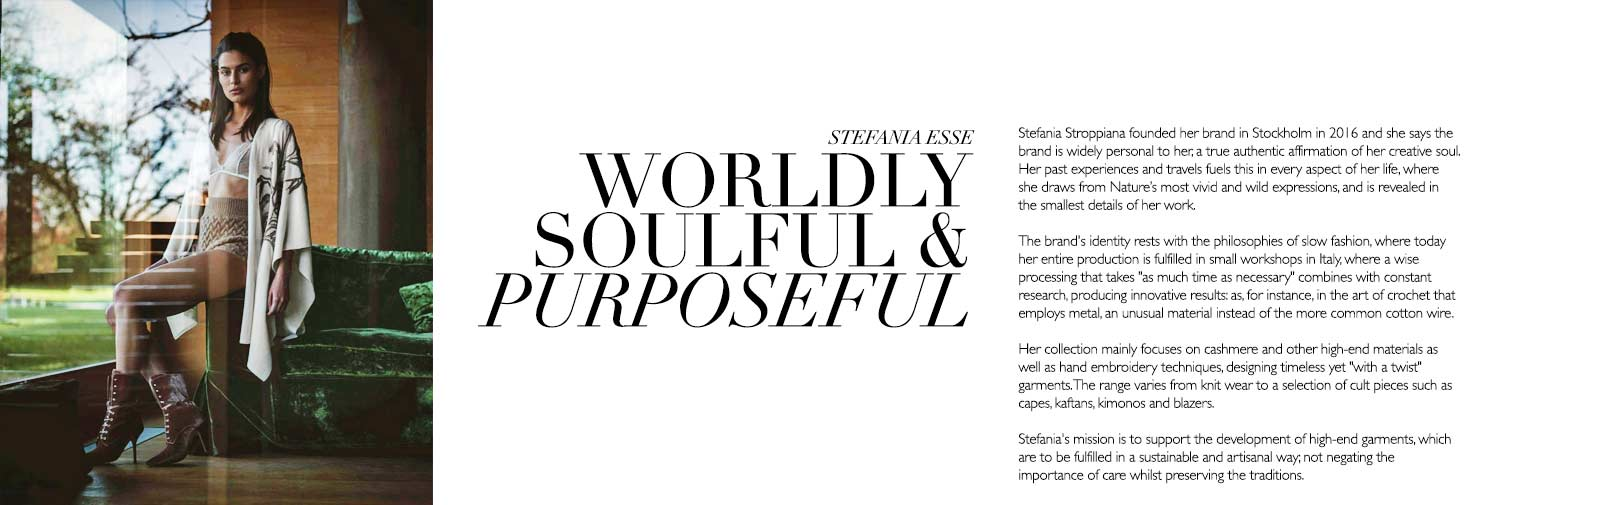 STEFANIA ESSE - WORLDLY PURPOSEFUL & SOULFUL - Stefania Stroppiana founded her brand in Stockholm in 2016 and she says the brand is widely personal to her, a true authentic affirmation of her creative soul. Her past experiences and travels fuels this in every aspect of her life, where she draws from Nature's most vivid and wild expressions, and is revealed in the smallest details of her work.  The brand's identity rests with the philosophies of slow fashion, where today her entire production is fulfilled in small workshops in Italy, where a wise processing that takes ''as much time as necessary'' combines with constant research, producing innovative results: as, for instance, in the art of crochet that employs metal, an unusual material instead of the more common cotton wire.  Her collection mainly focuses on cashmere and other high-end materials as well as hand embroidery techniques, designing timeless yet ''with a twist'' garments. The range varies from knit wear to a selection of cult pieces such as capes, kaftans, kimonos and blazers.  Stefania's mission is to support the development of high-end garments, which are to be fulfilled in a sustainable and artisanal way; not negating the importance of care whilst preserving the traditions.